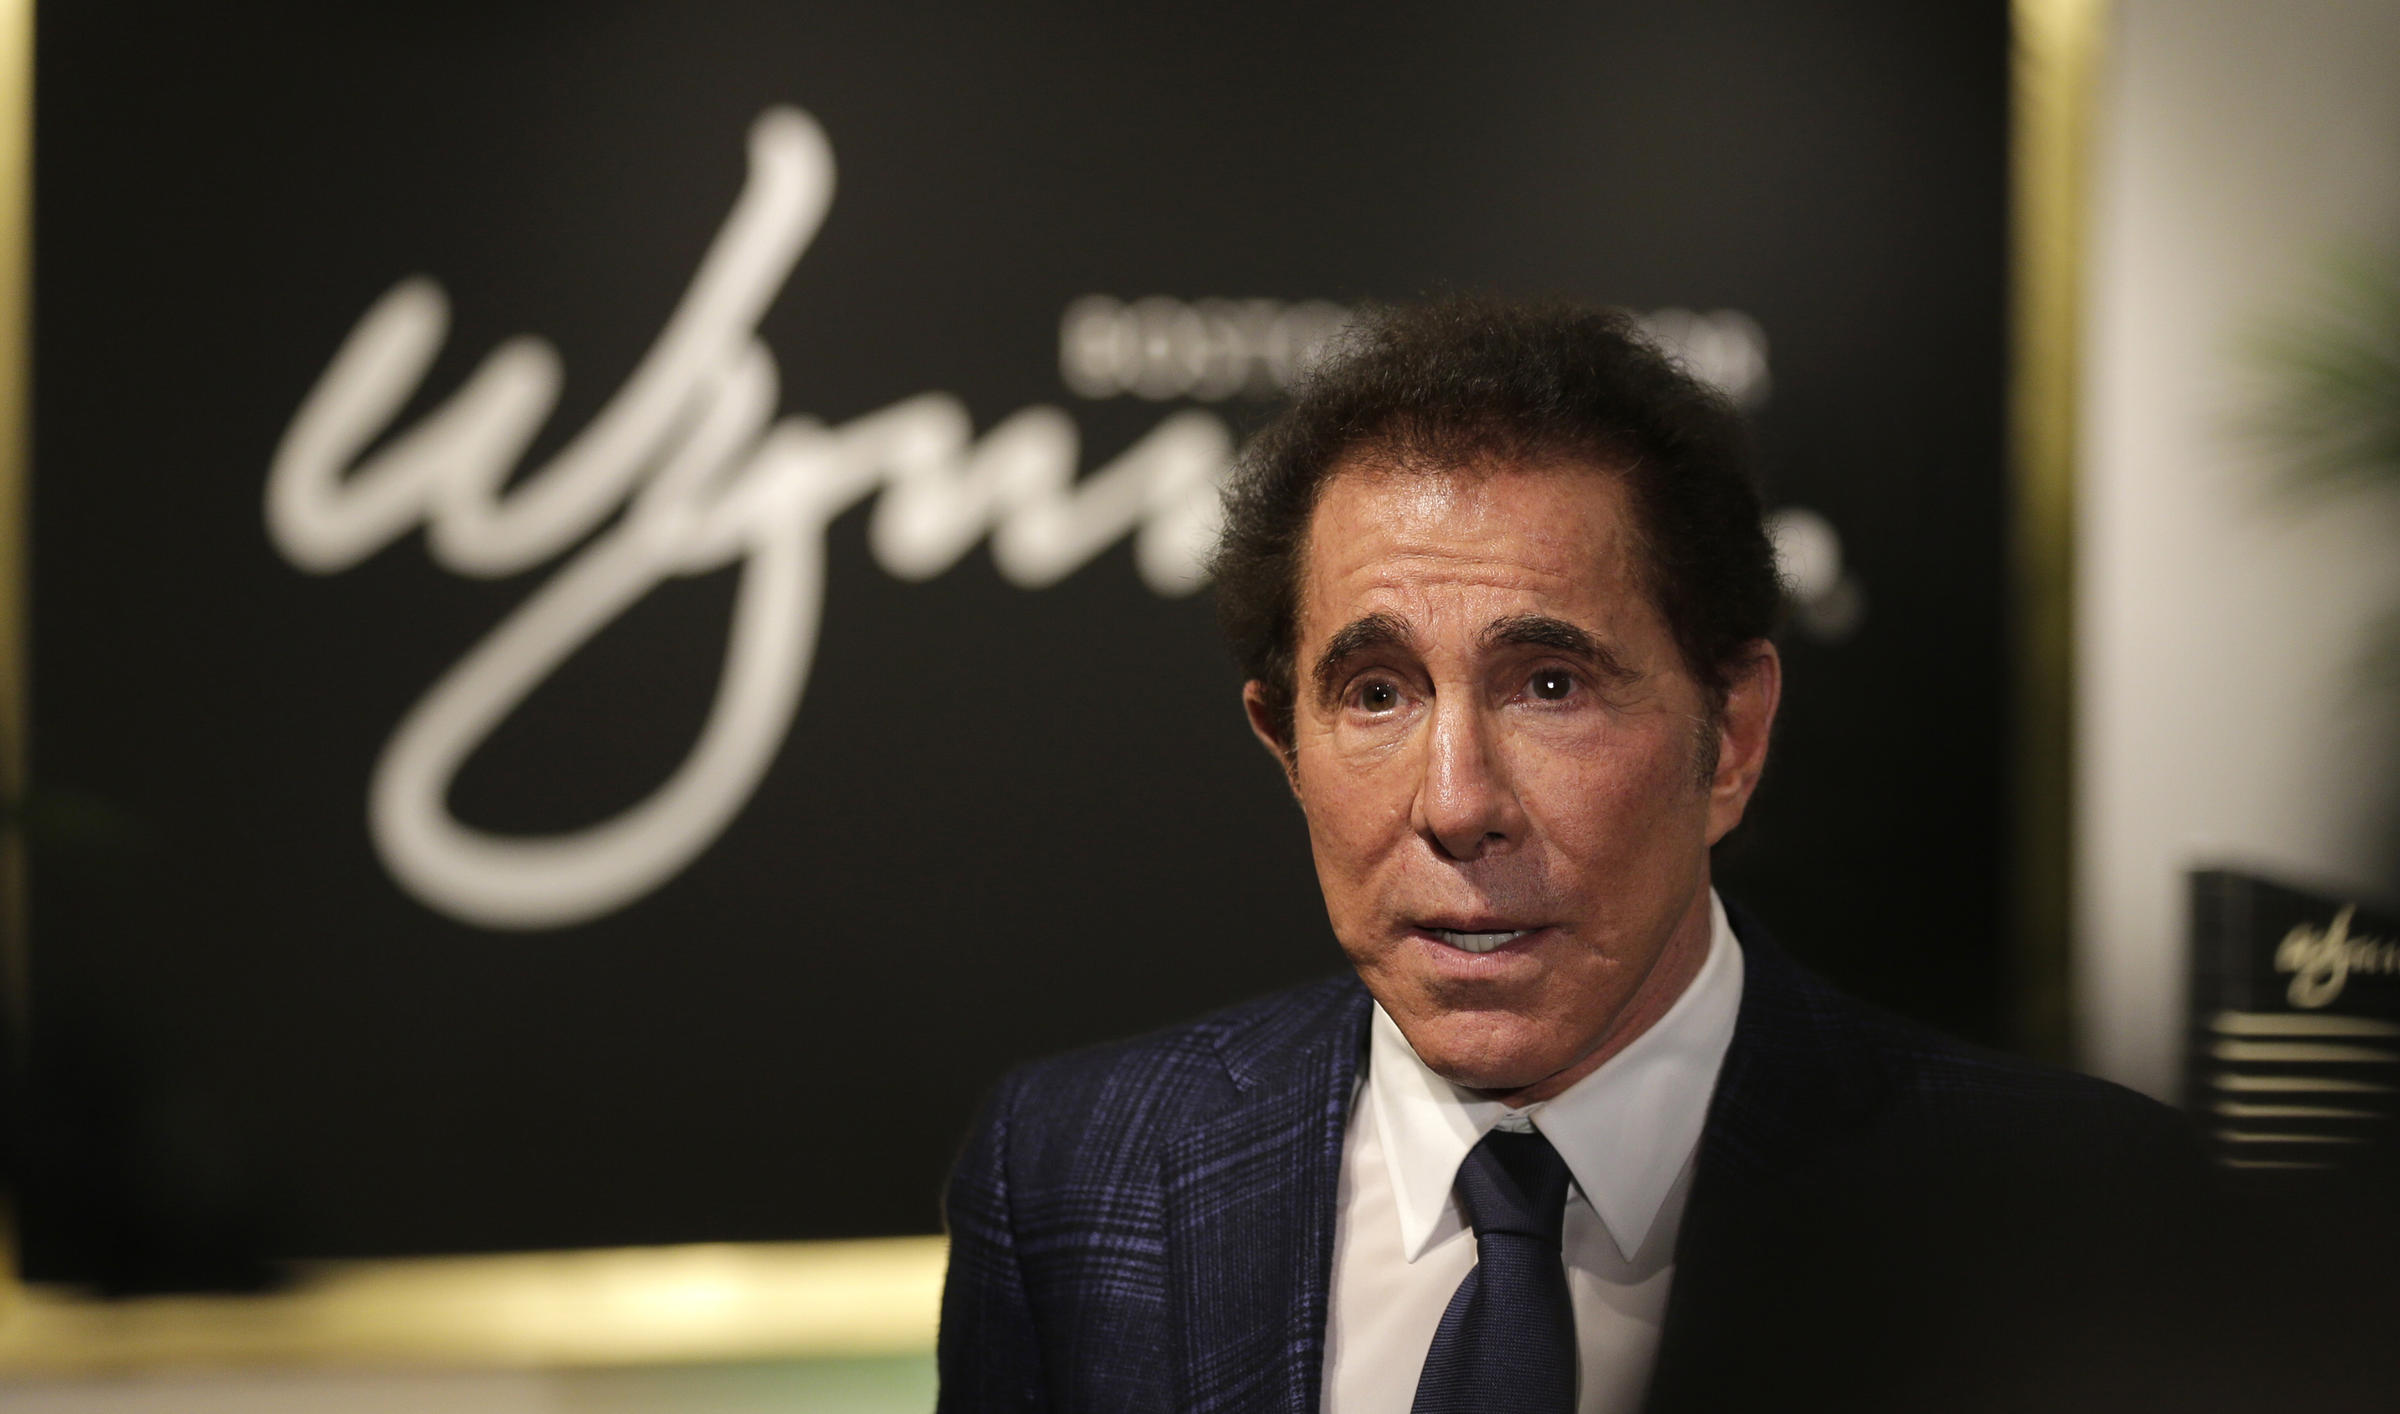 Facing Years Of Allegations, Casino Mogul Steve Wynn Resigns From RNC